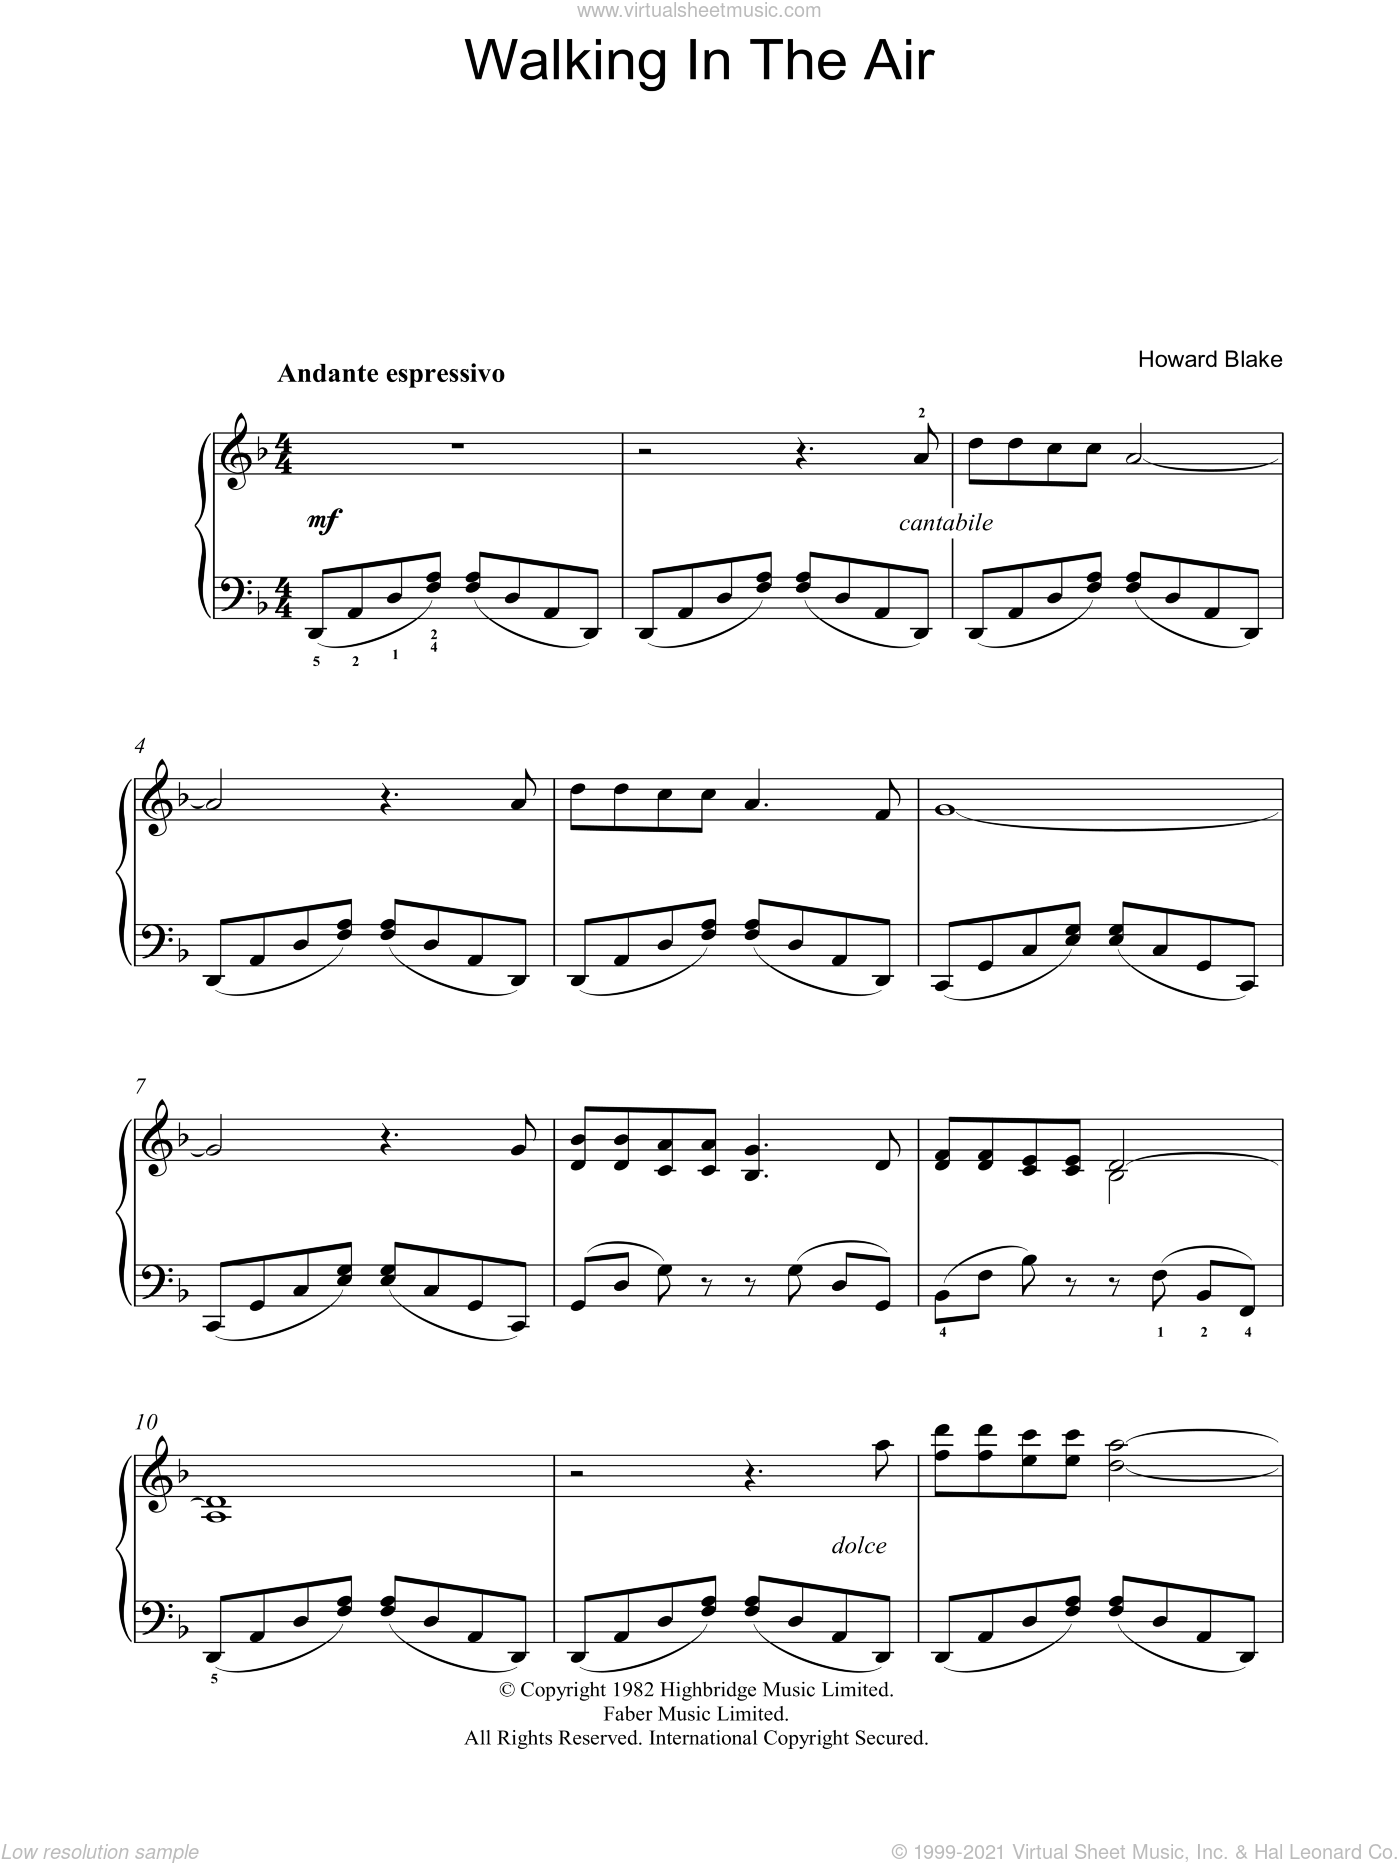 Walking In The Air sheet music for piano solo by Howard Blake and The Snowman (Movie), intermediate. Score Image Preview.